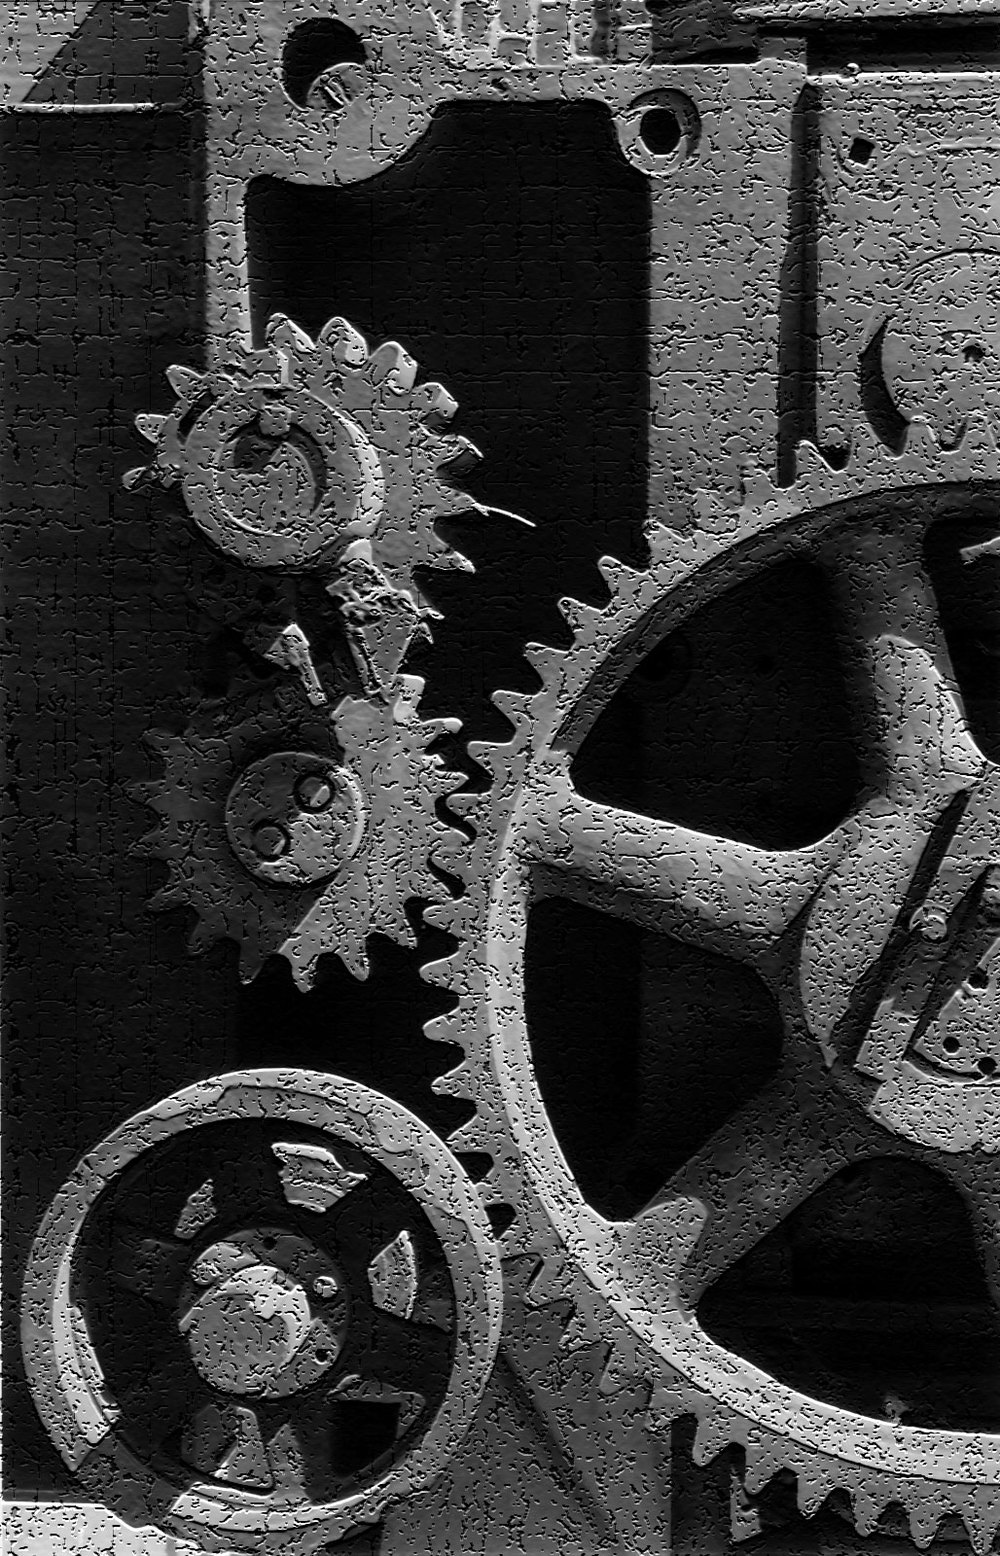 Gear wheels 2